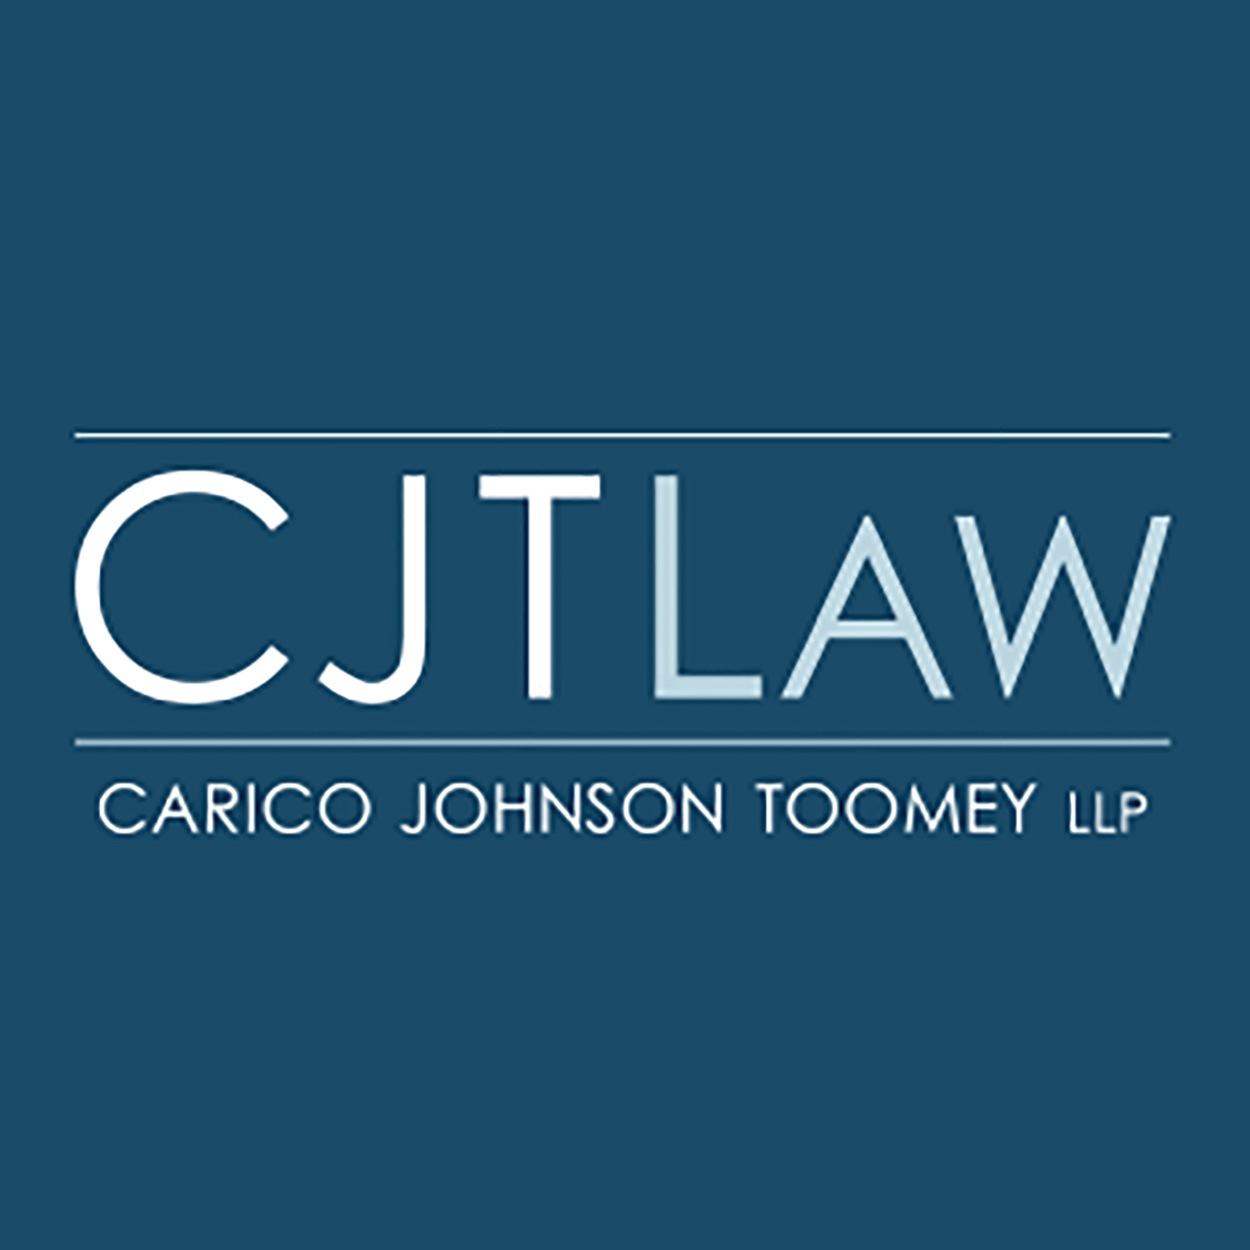 Carico Johnson Toomey LLP